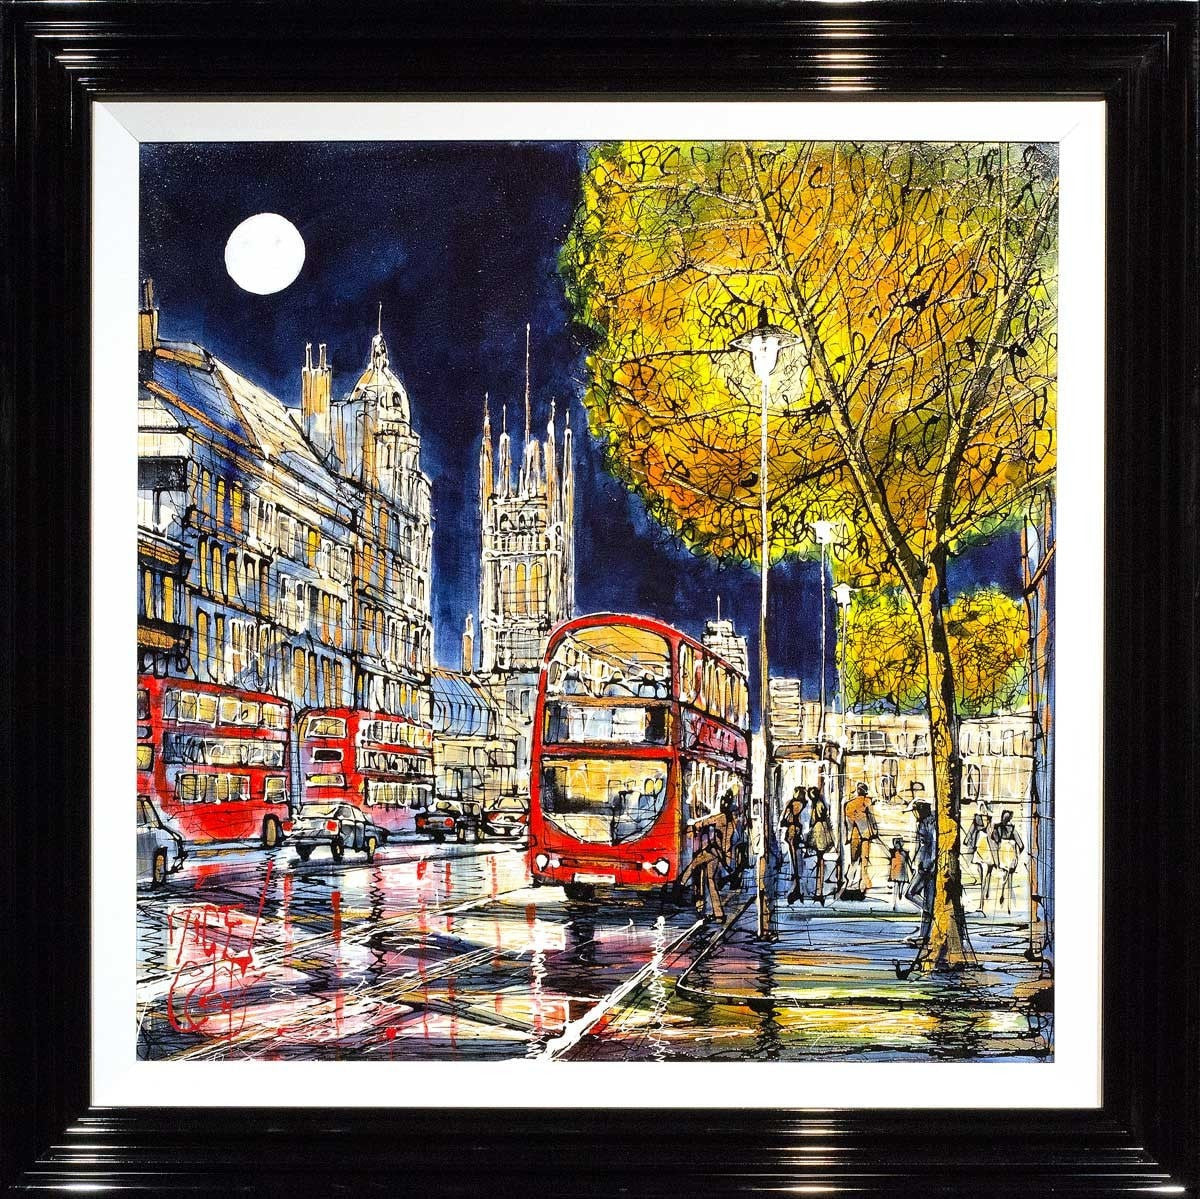 The Night Bus Home Nigel Cooke